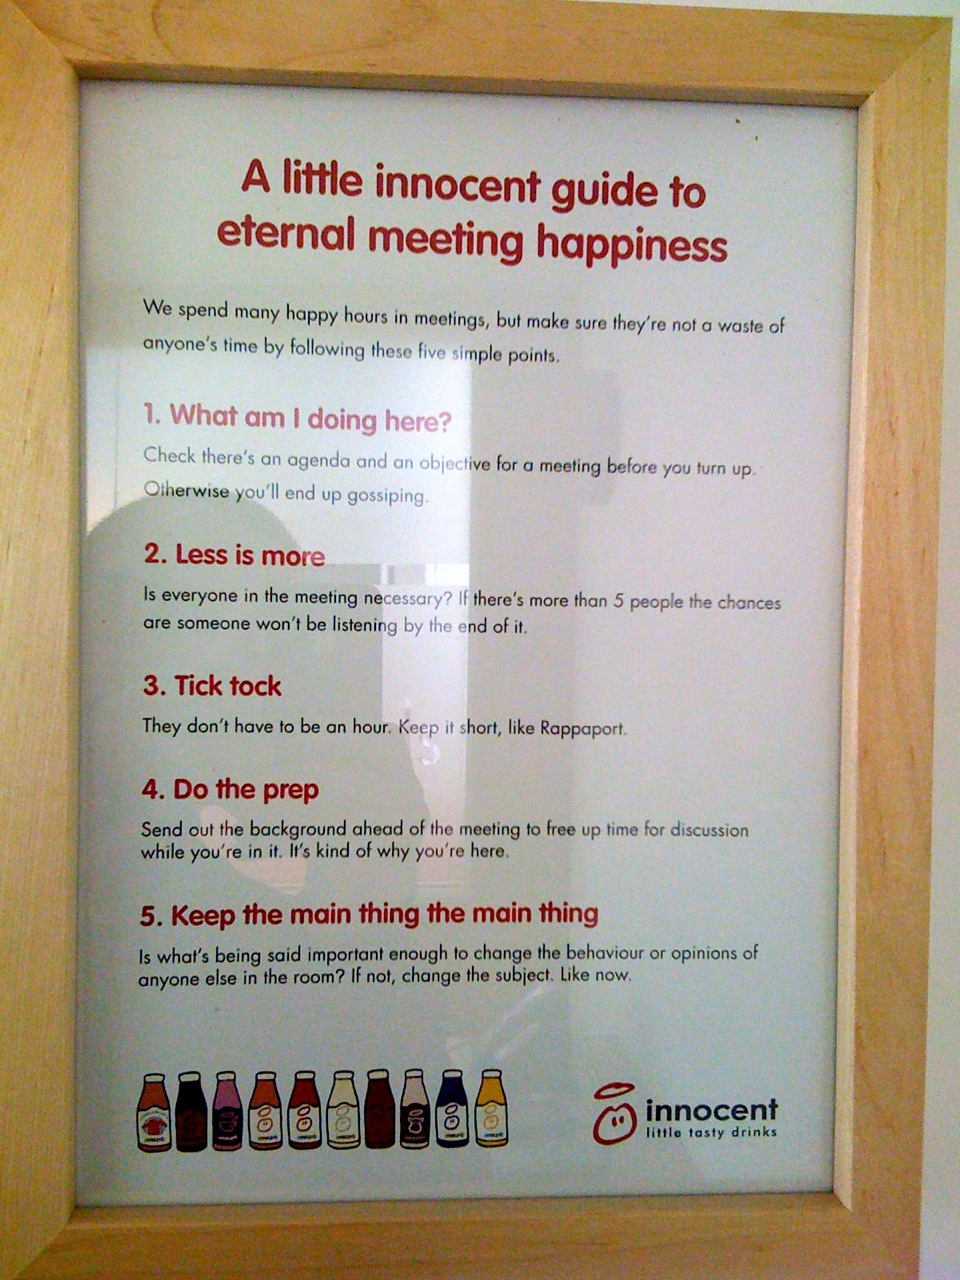 Innocent meeting guidelines